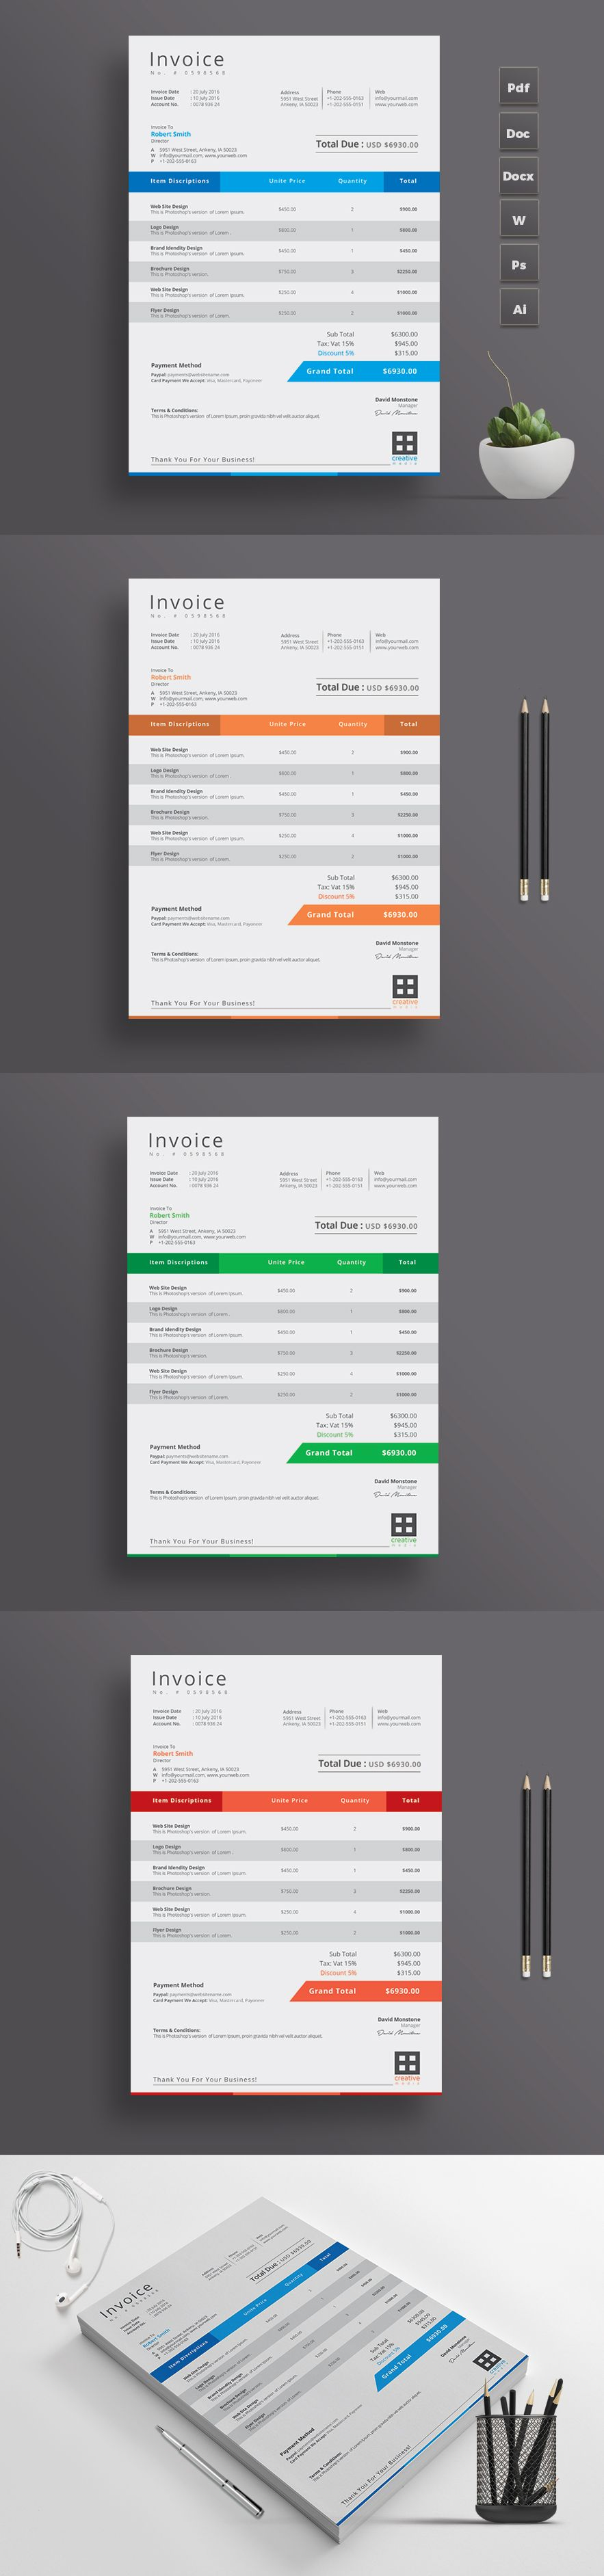 Simple Invoice Design Template With Microsoft Excel Version